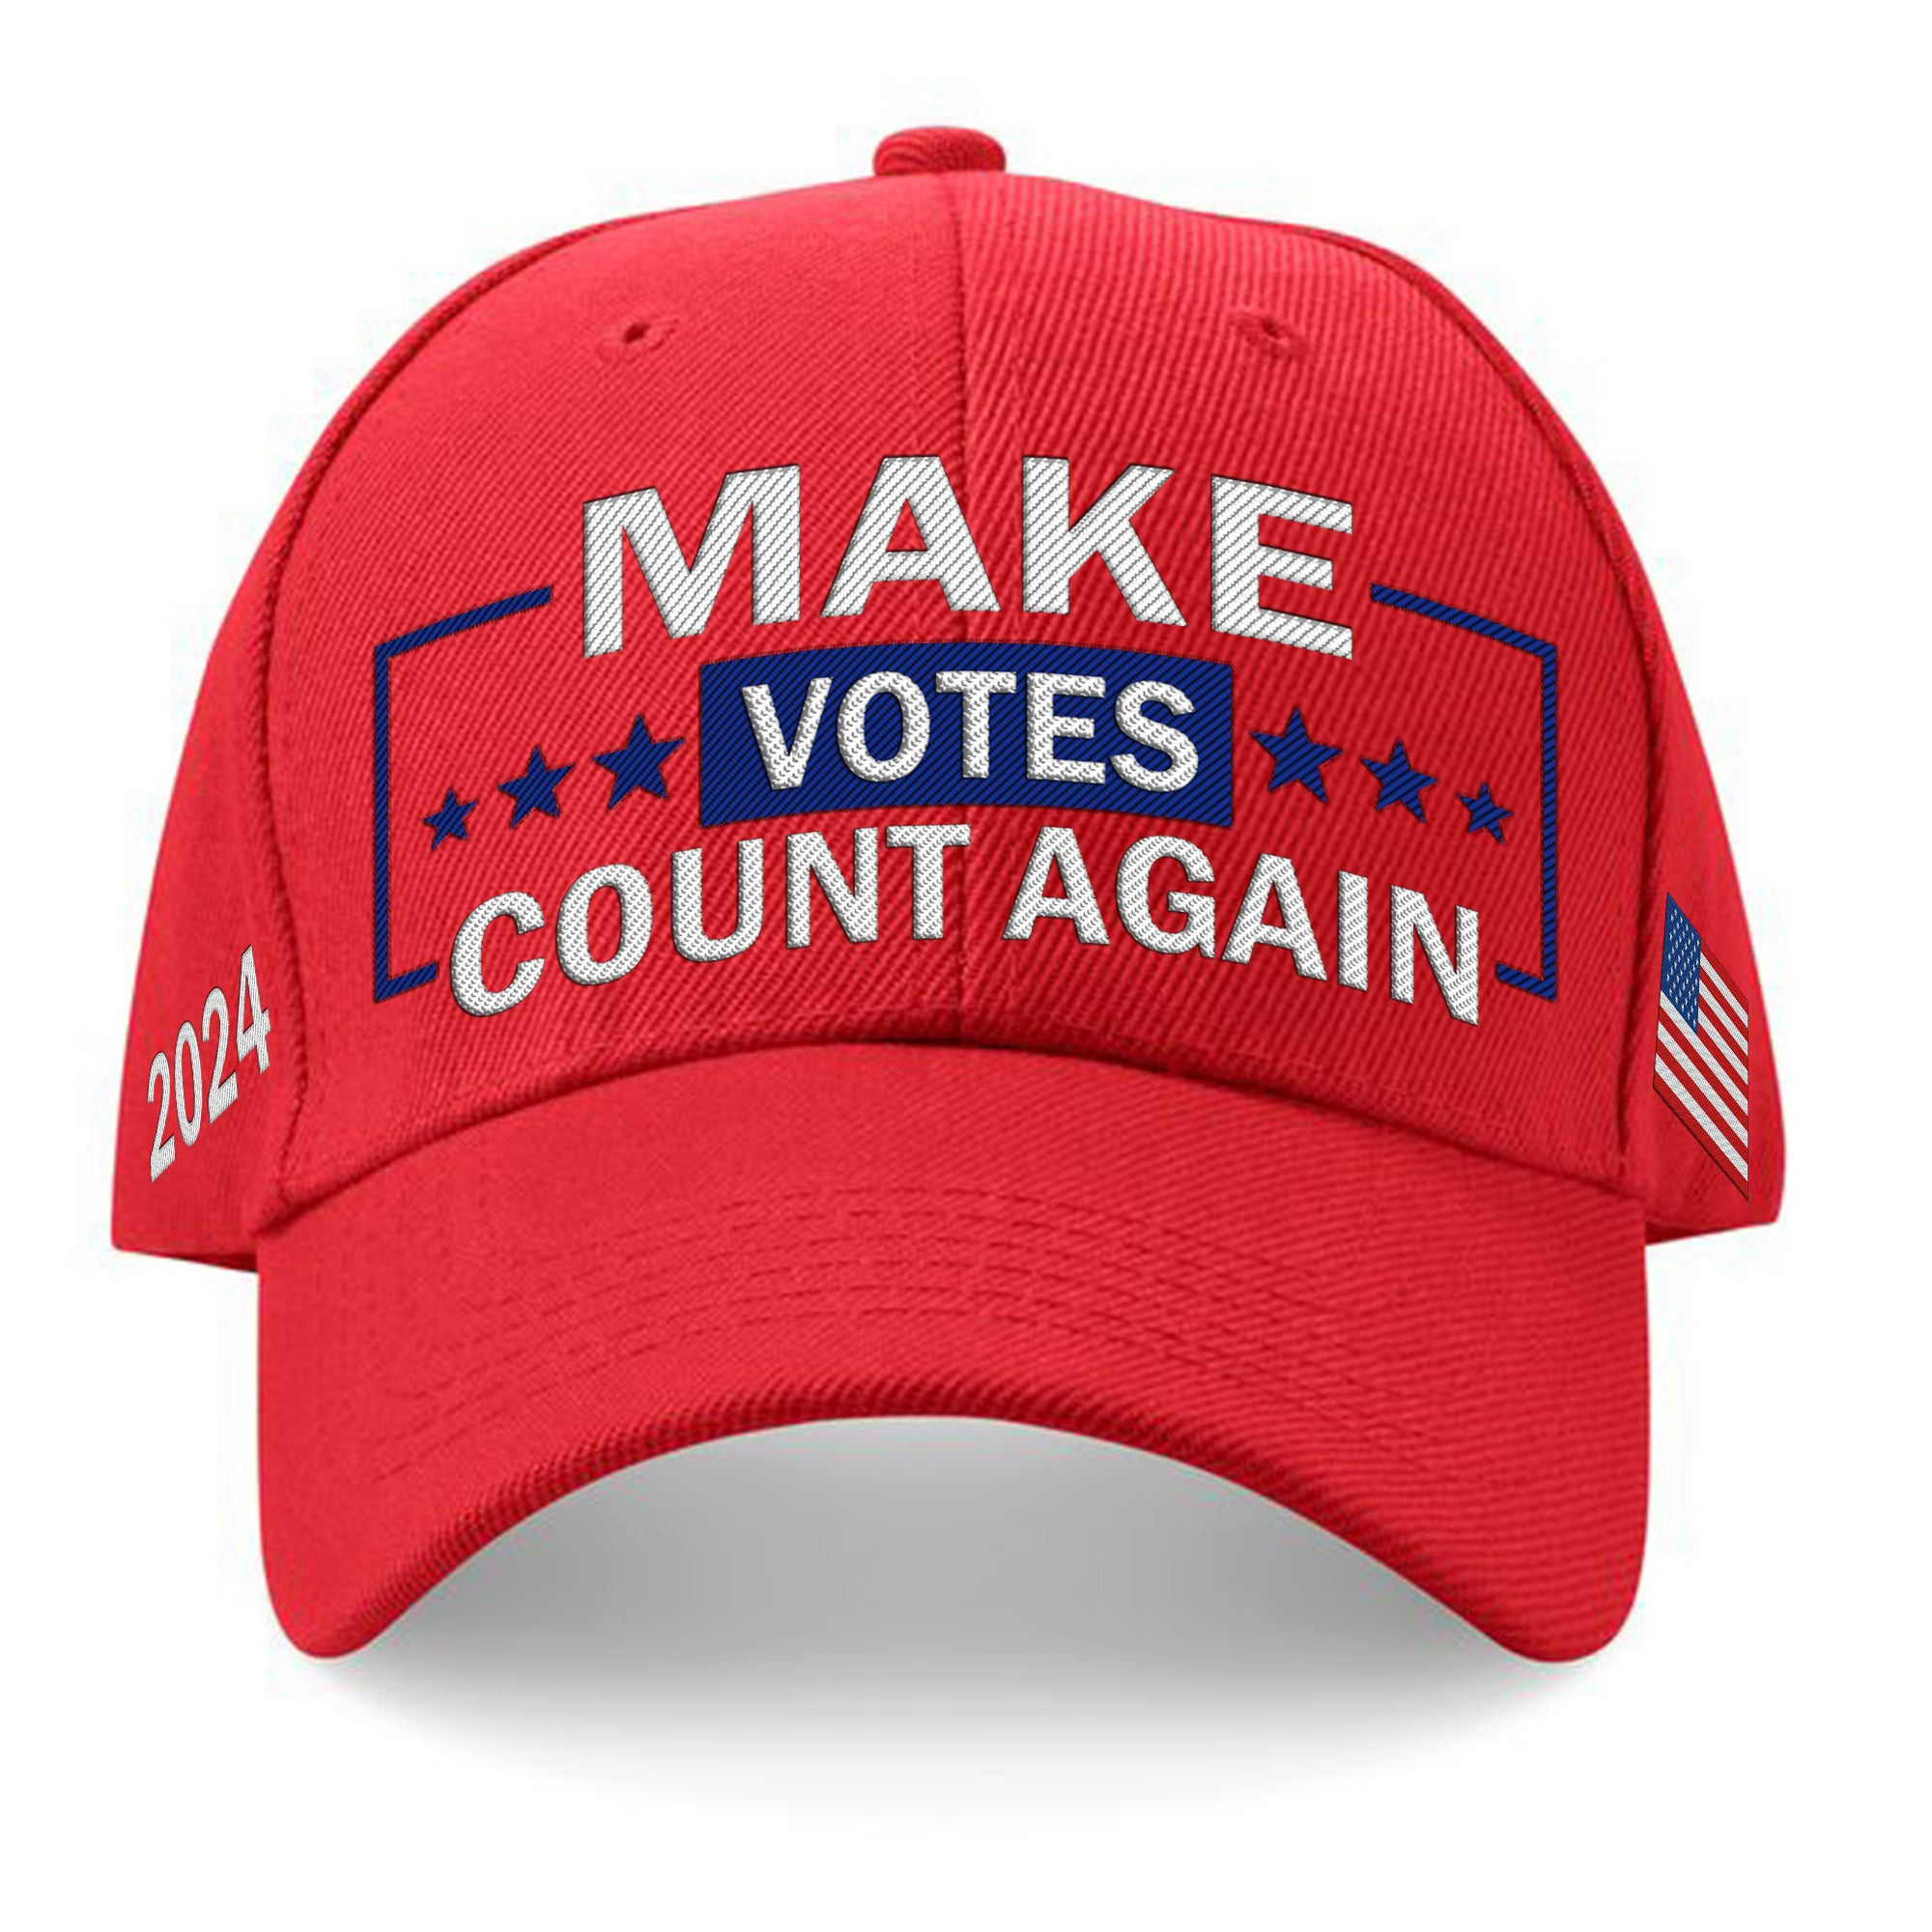 Make Votes Count Again Limited Edition Embroidered Hat